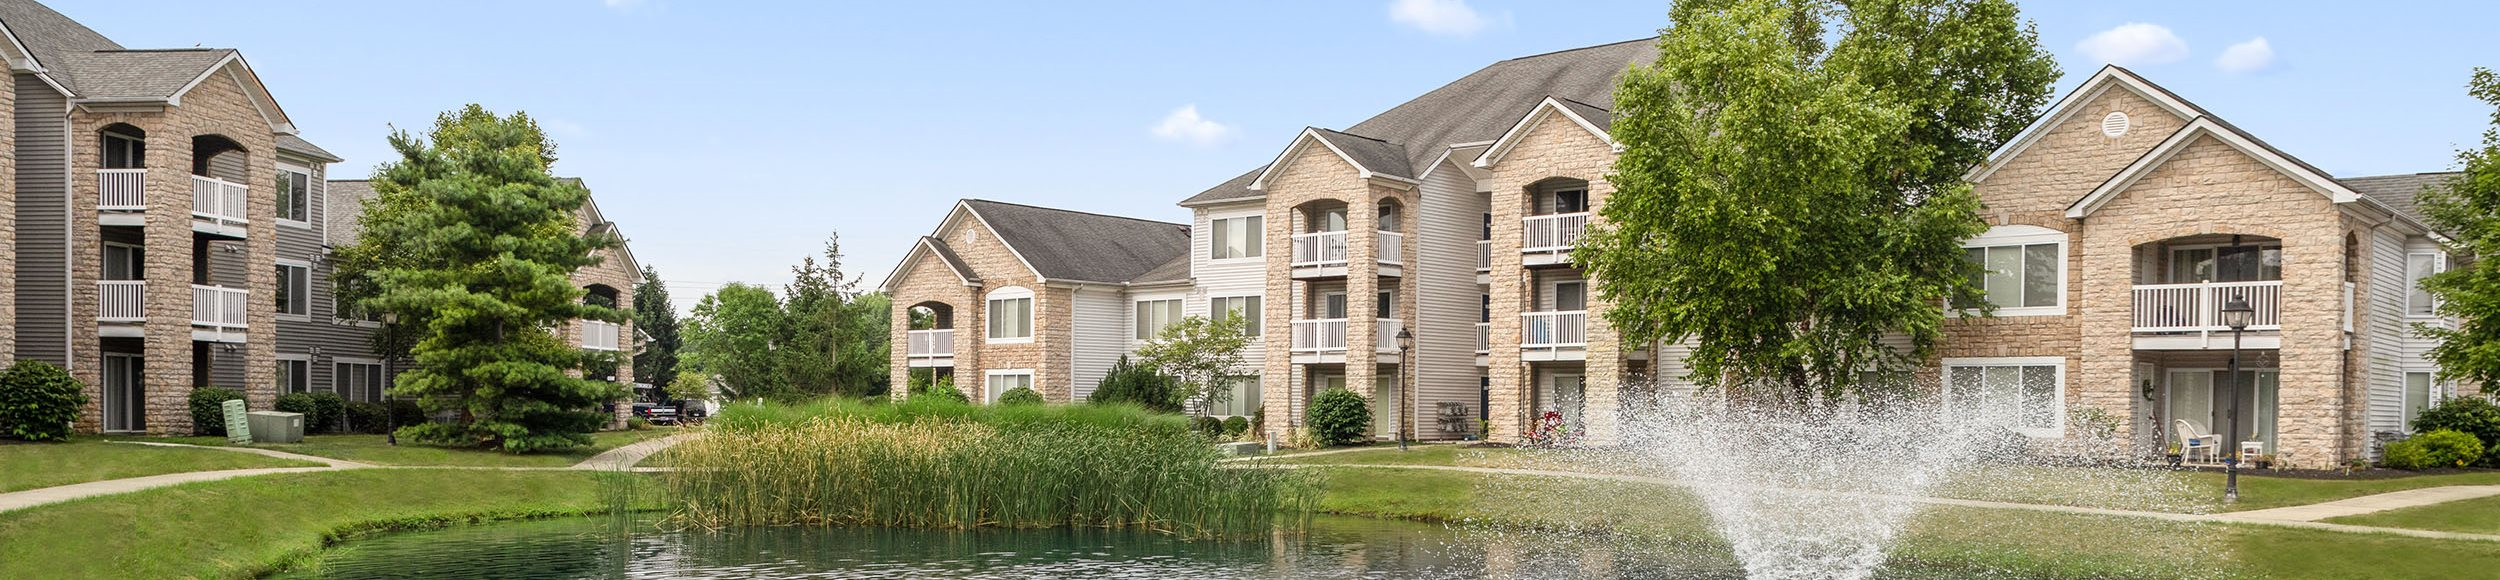 Lake View Front - Bennington Pond Apartments